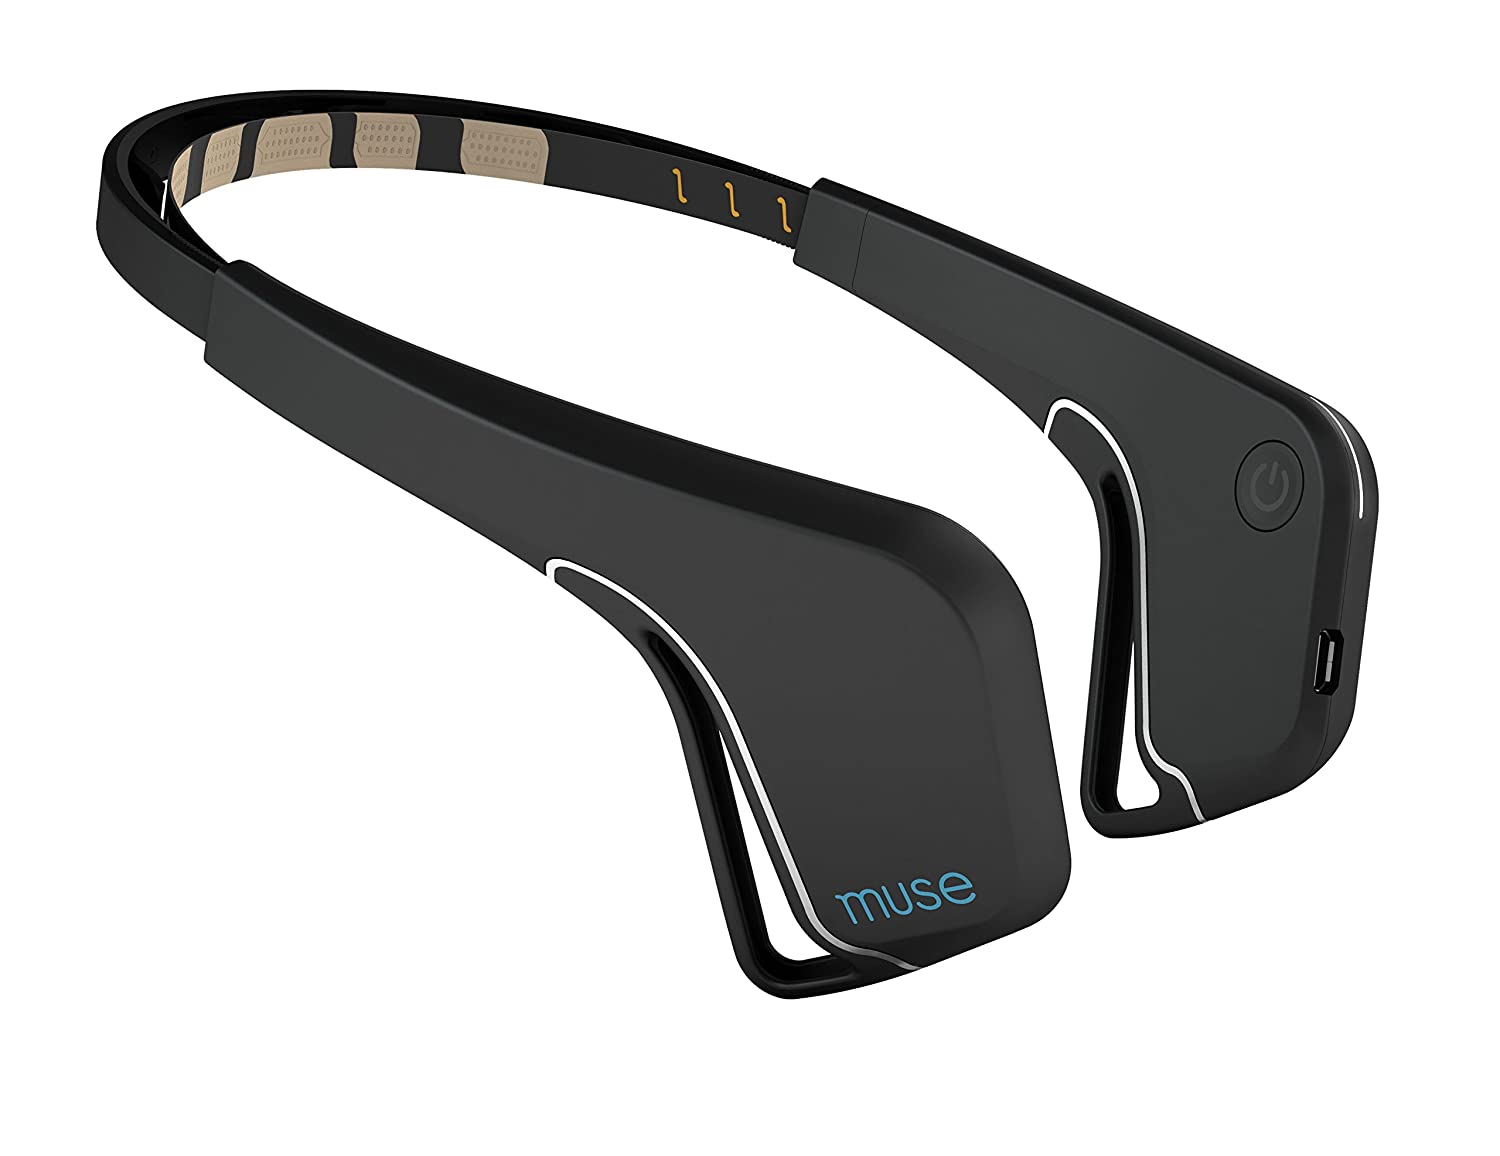 Image result for muse brain sensing headband image